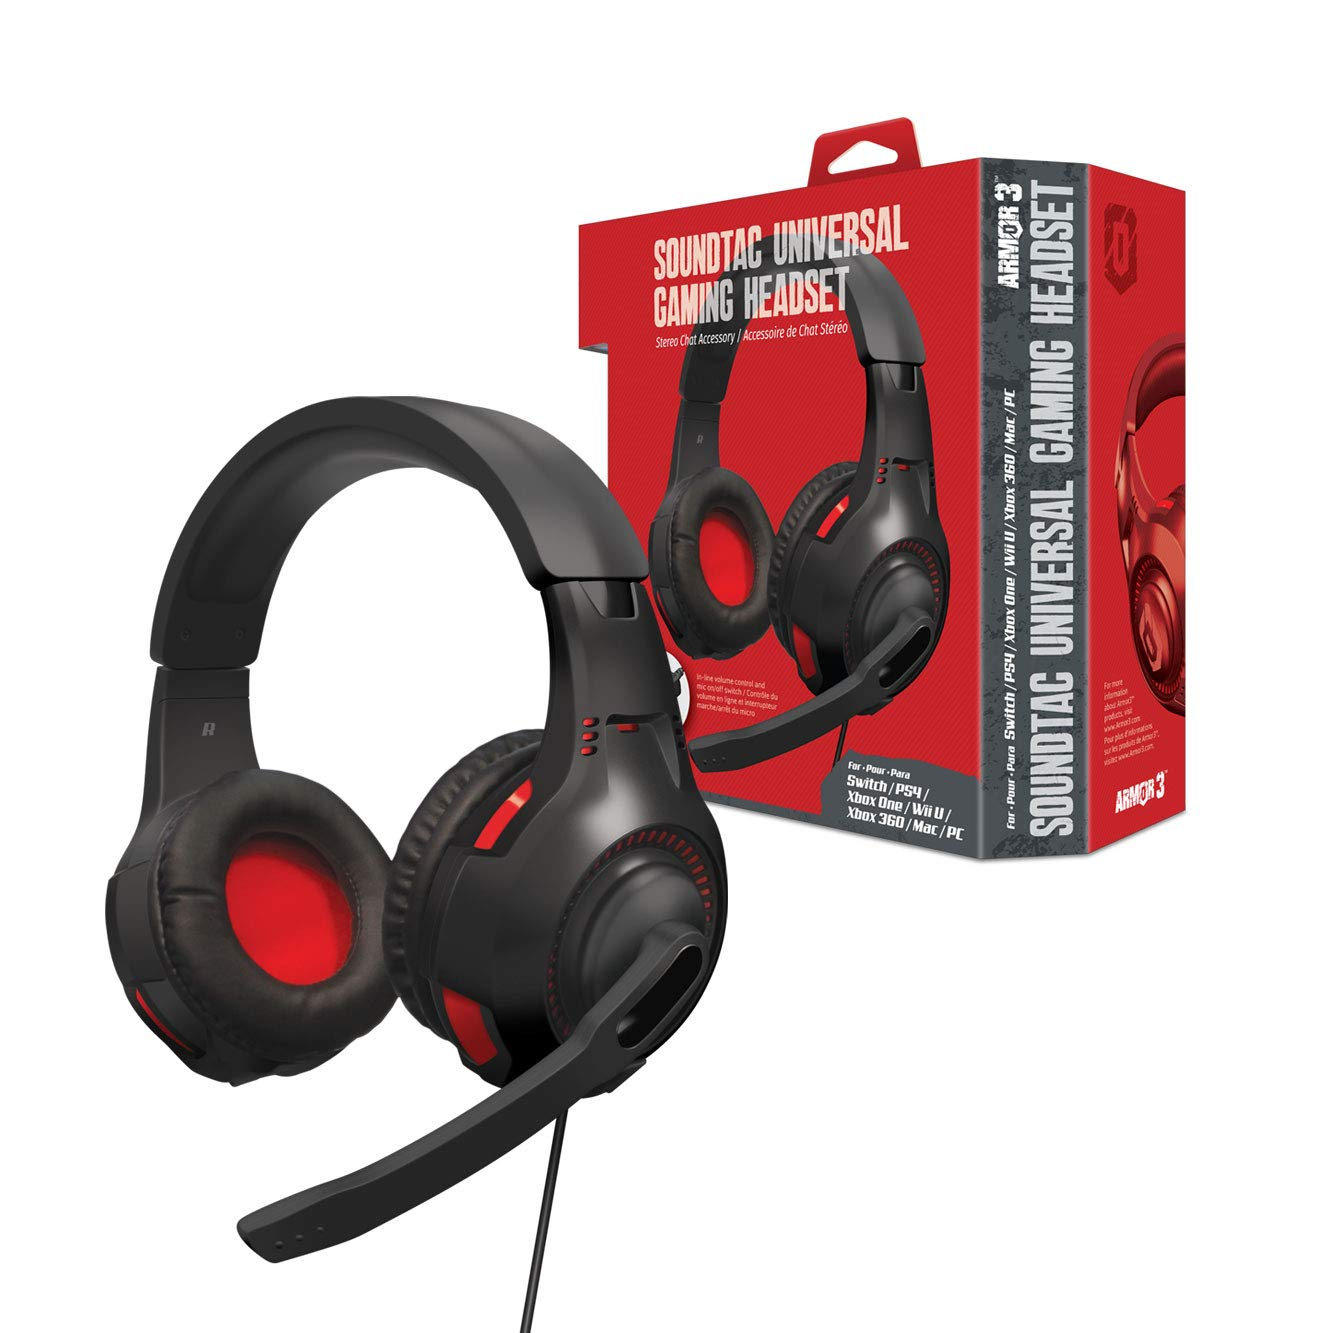 Armor3 ''SoundTac'' Universal Gaming Headset for Switch/ PS4/ Xbox One/ Wii U/ Xbox 360/ PC/ Mac by Armor3